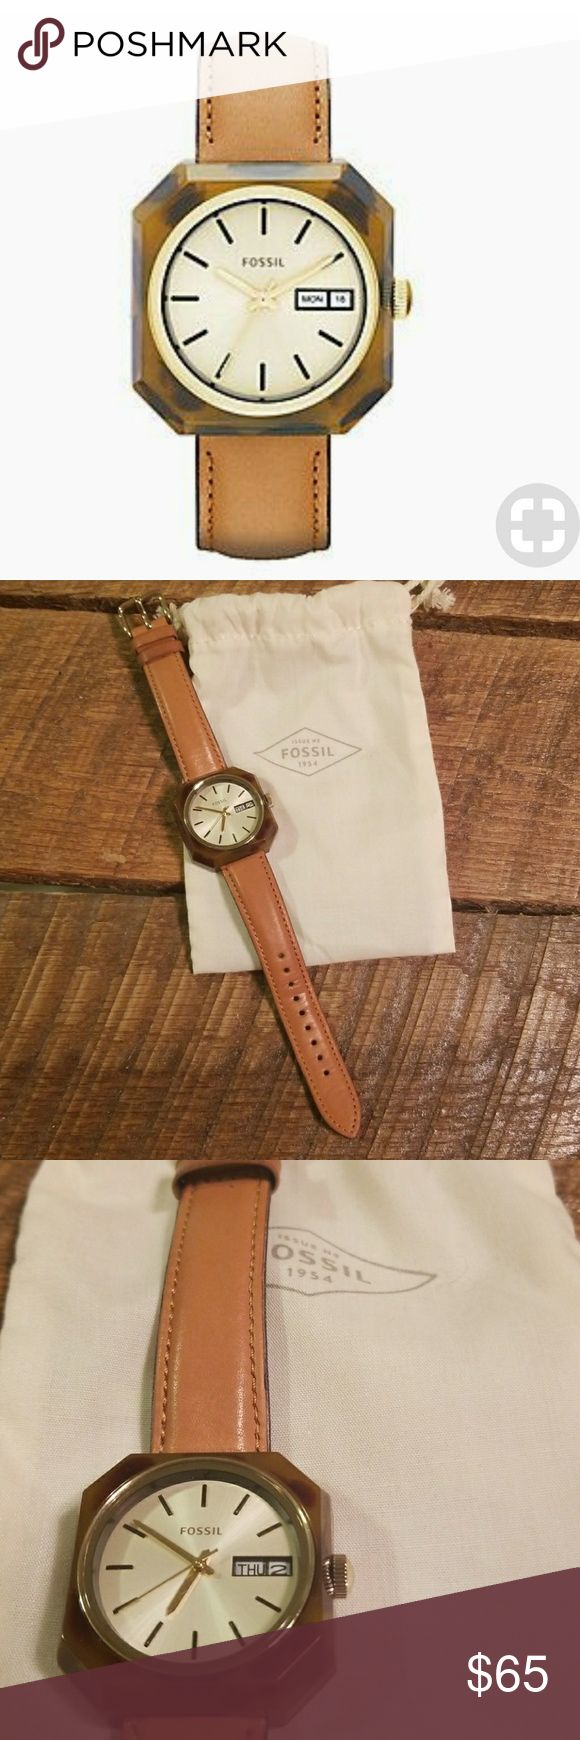 Fossil leather and tortoise shell watch Fossil watch with camel leather strap and plastic tortoise shell casing.  Gently used and in good condition.  Needs a new battery. Fossil Accessories Watches